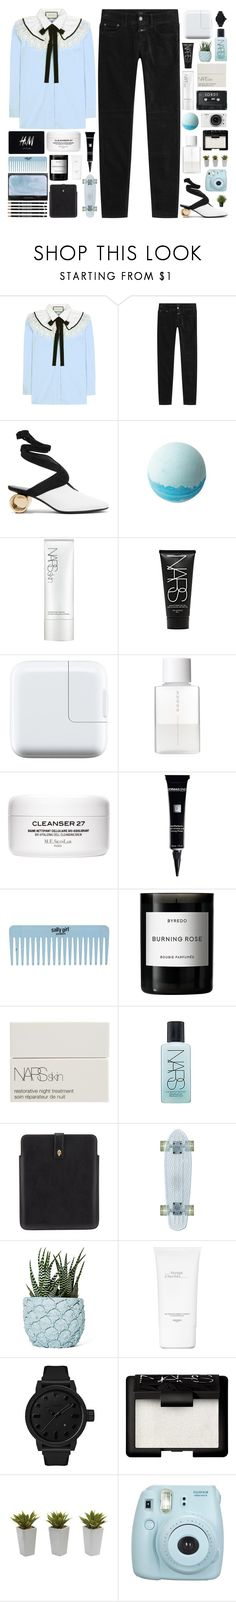 """""""You try to forget and you tell her that you miss her."""" by pure-and-valuable ❤ liked on Polyvore featuring Gucci, Closed, J.W. Anderson, NARS Cosmetics, SUQQU, H&M, Dermablend, Byredo, Alexander McQueen and Chen Chen & Kai Williams"""